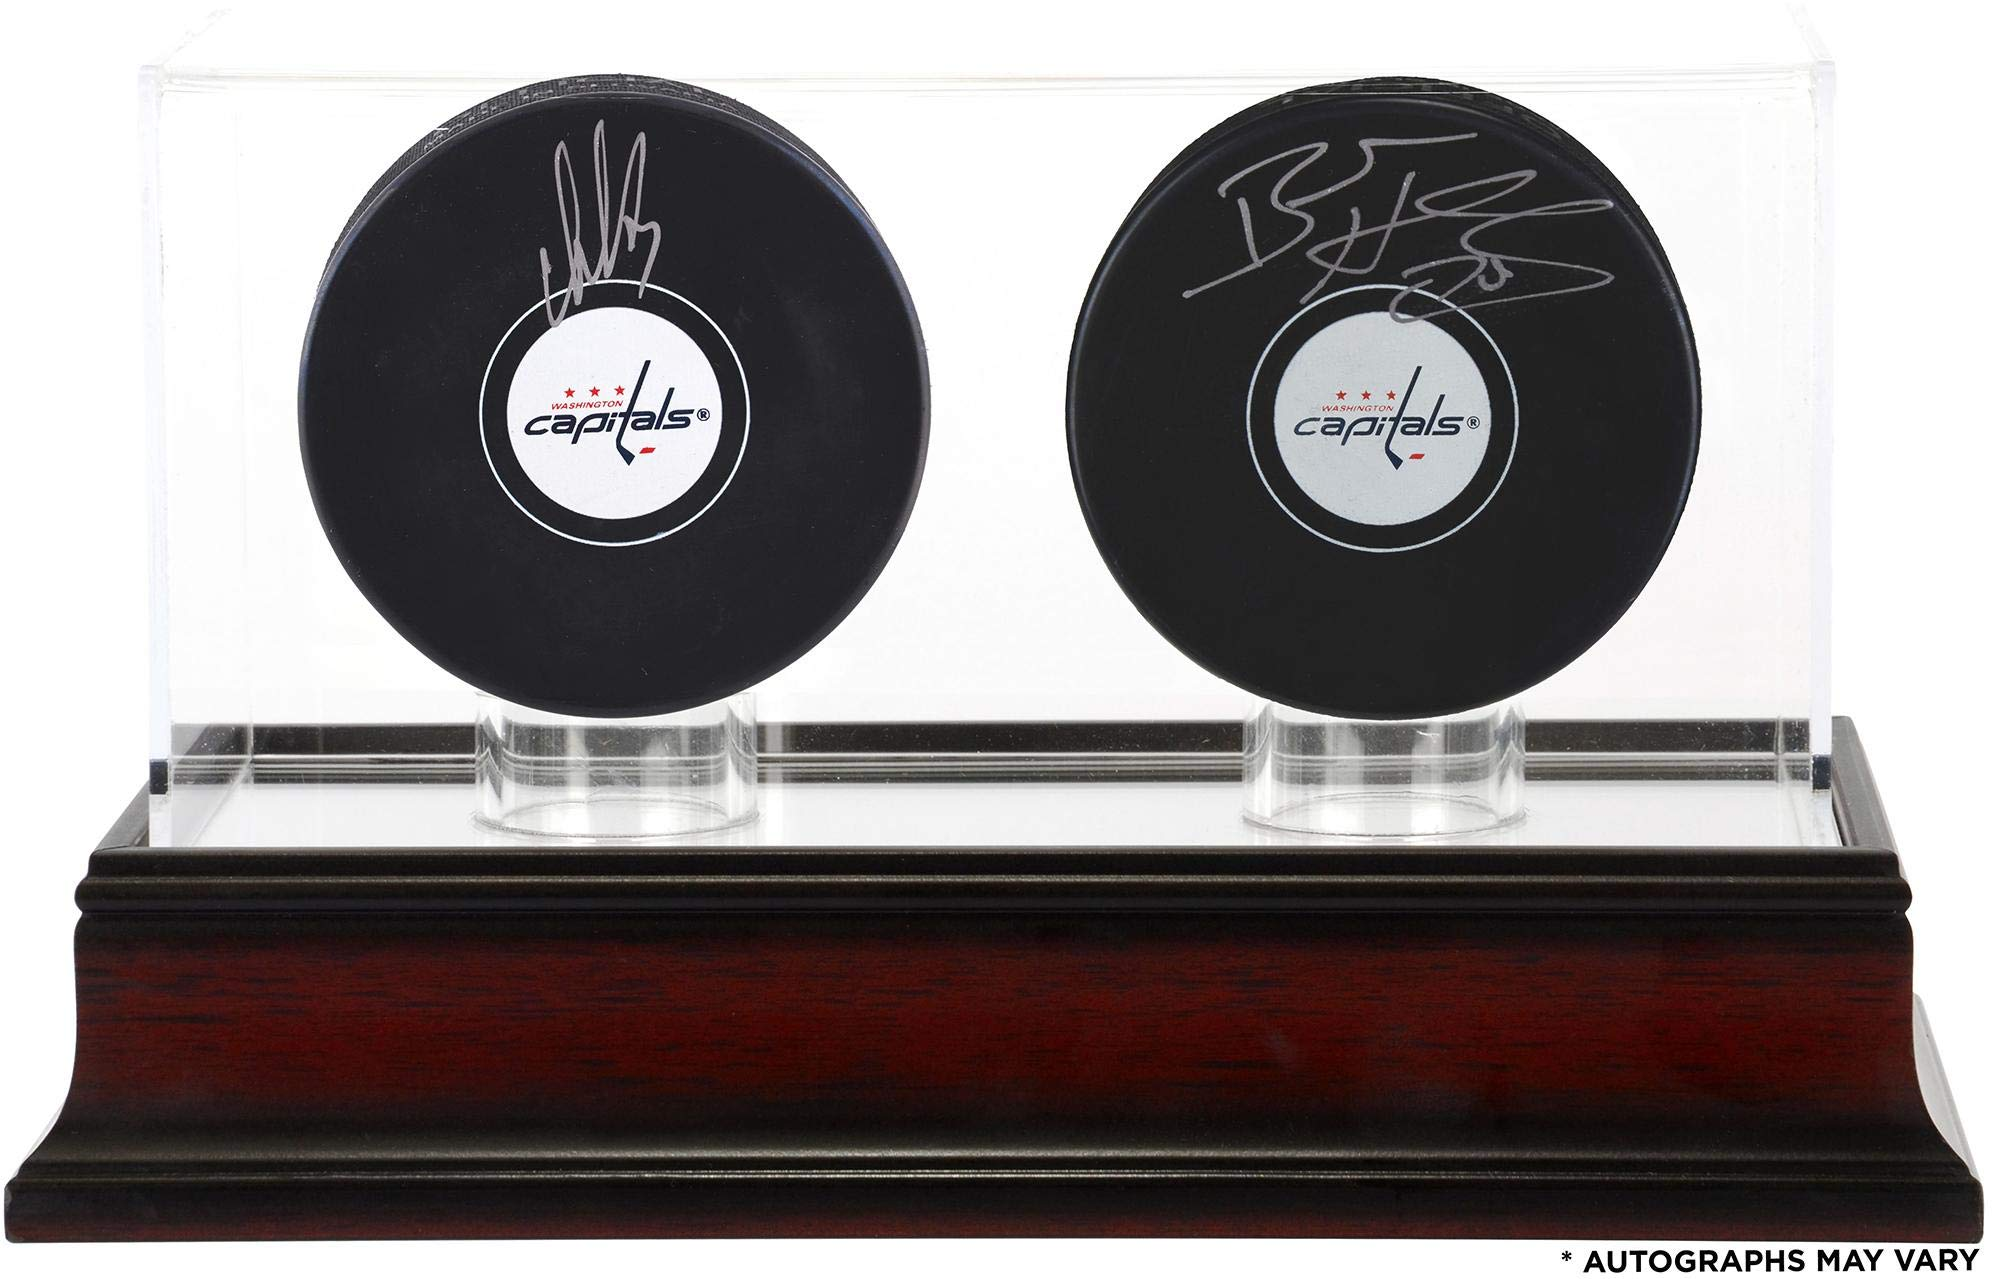 Alex Ovechkin and Braden Holtby Washington Capitals Autographed Hockey Pucks with Mahogany Two Puck Case Fanatics Authentic Certified